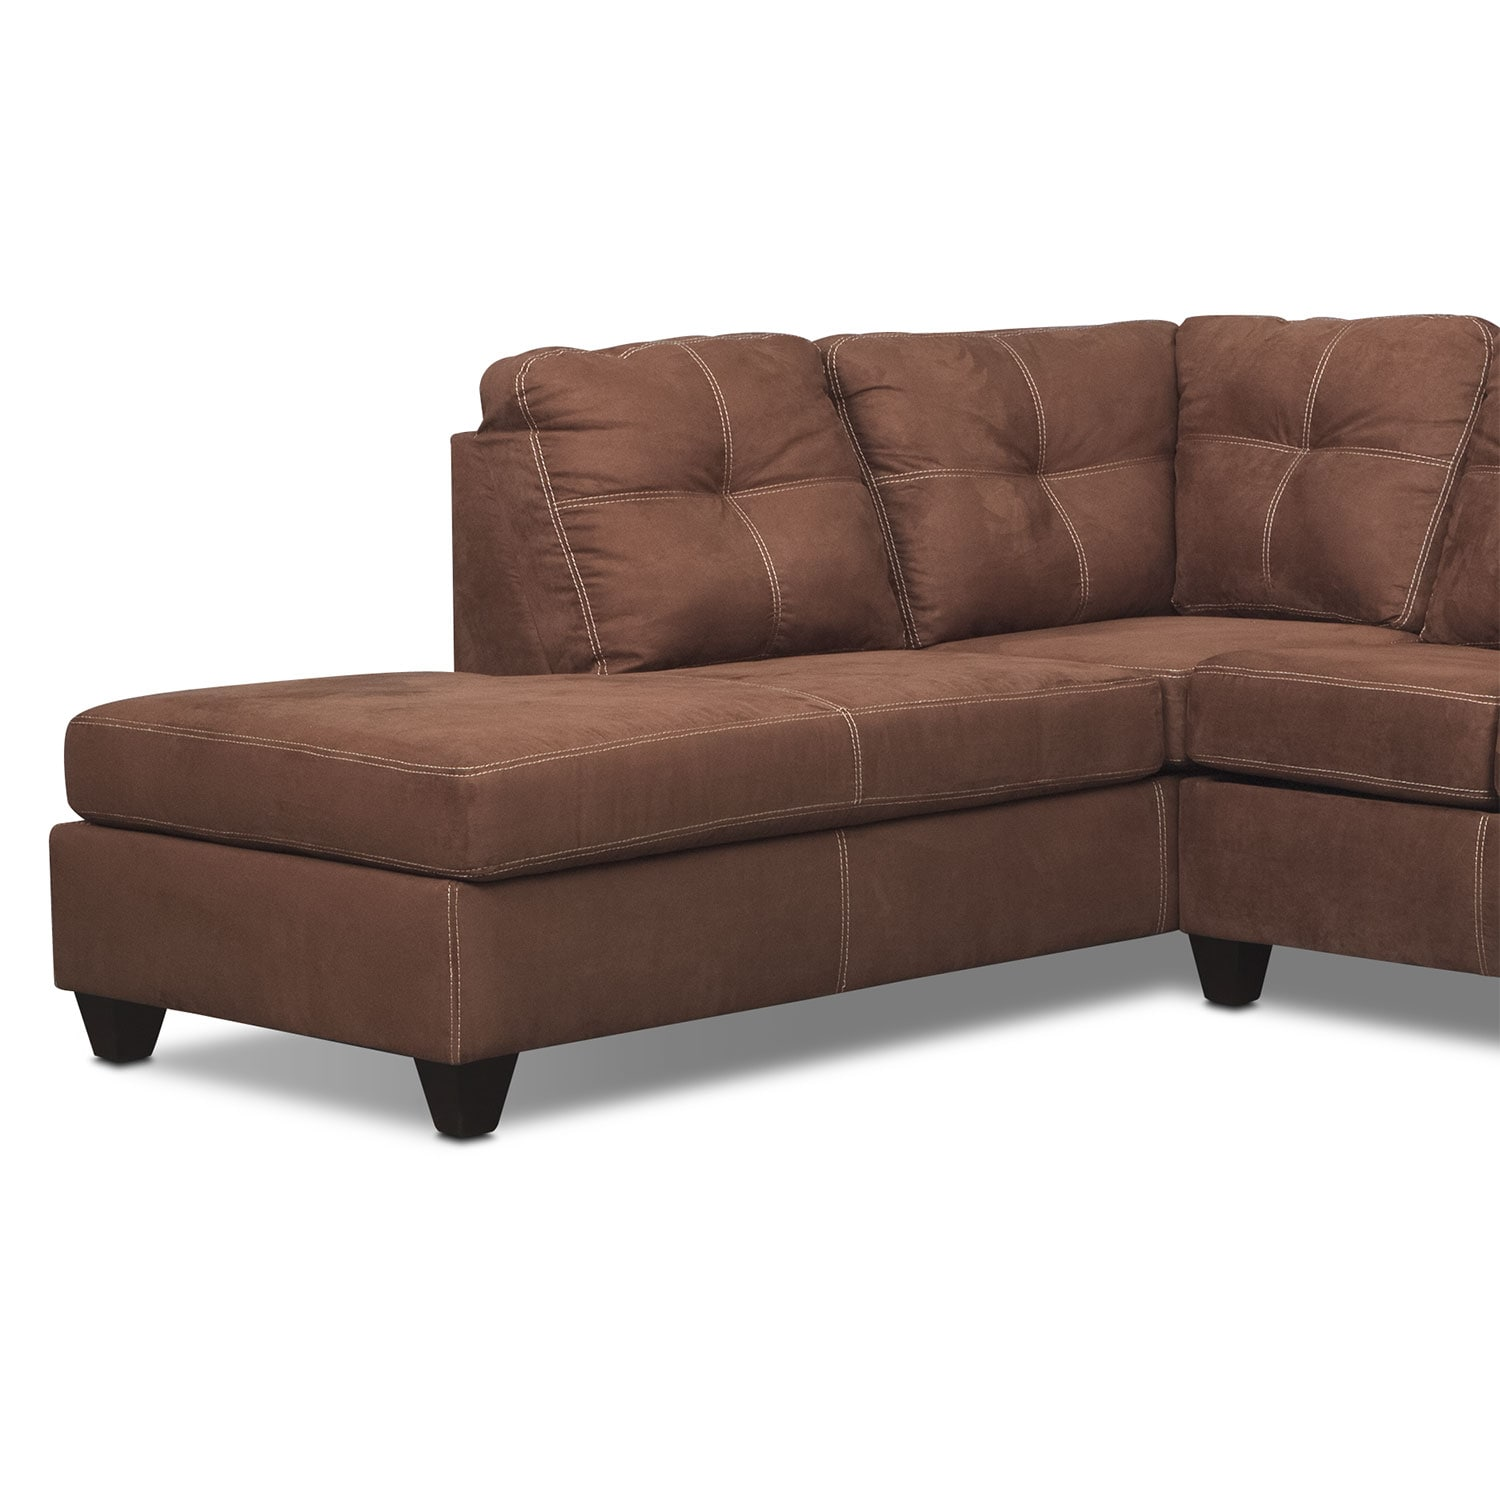 Awesome 2 piece sectional sofa with chaise sectional sofas for 2 piece sectional sofa with chaise